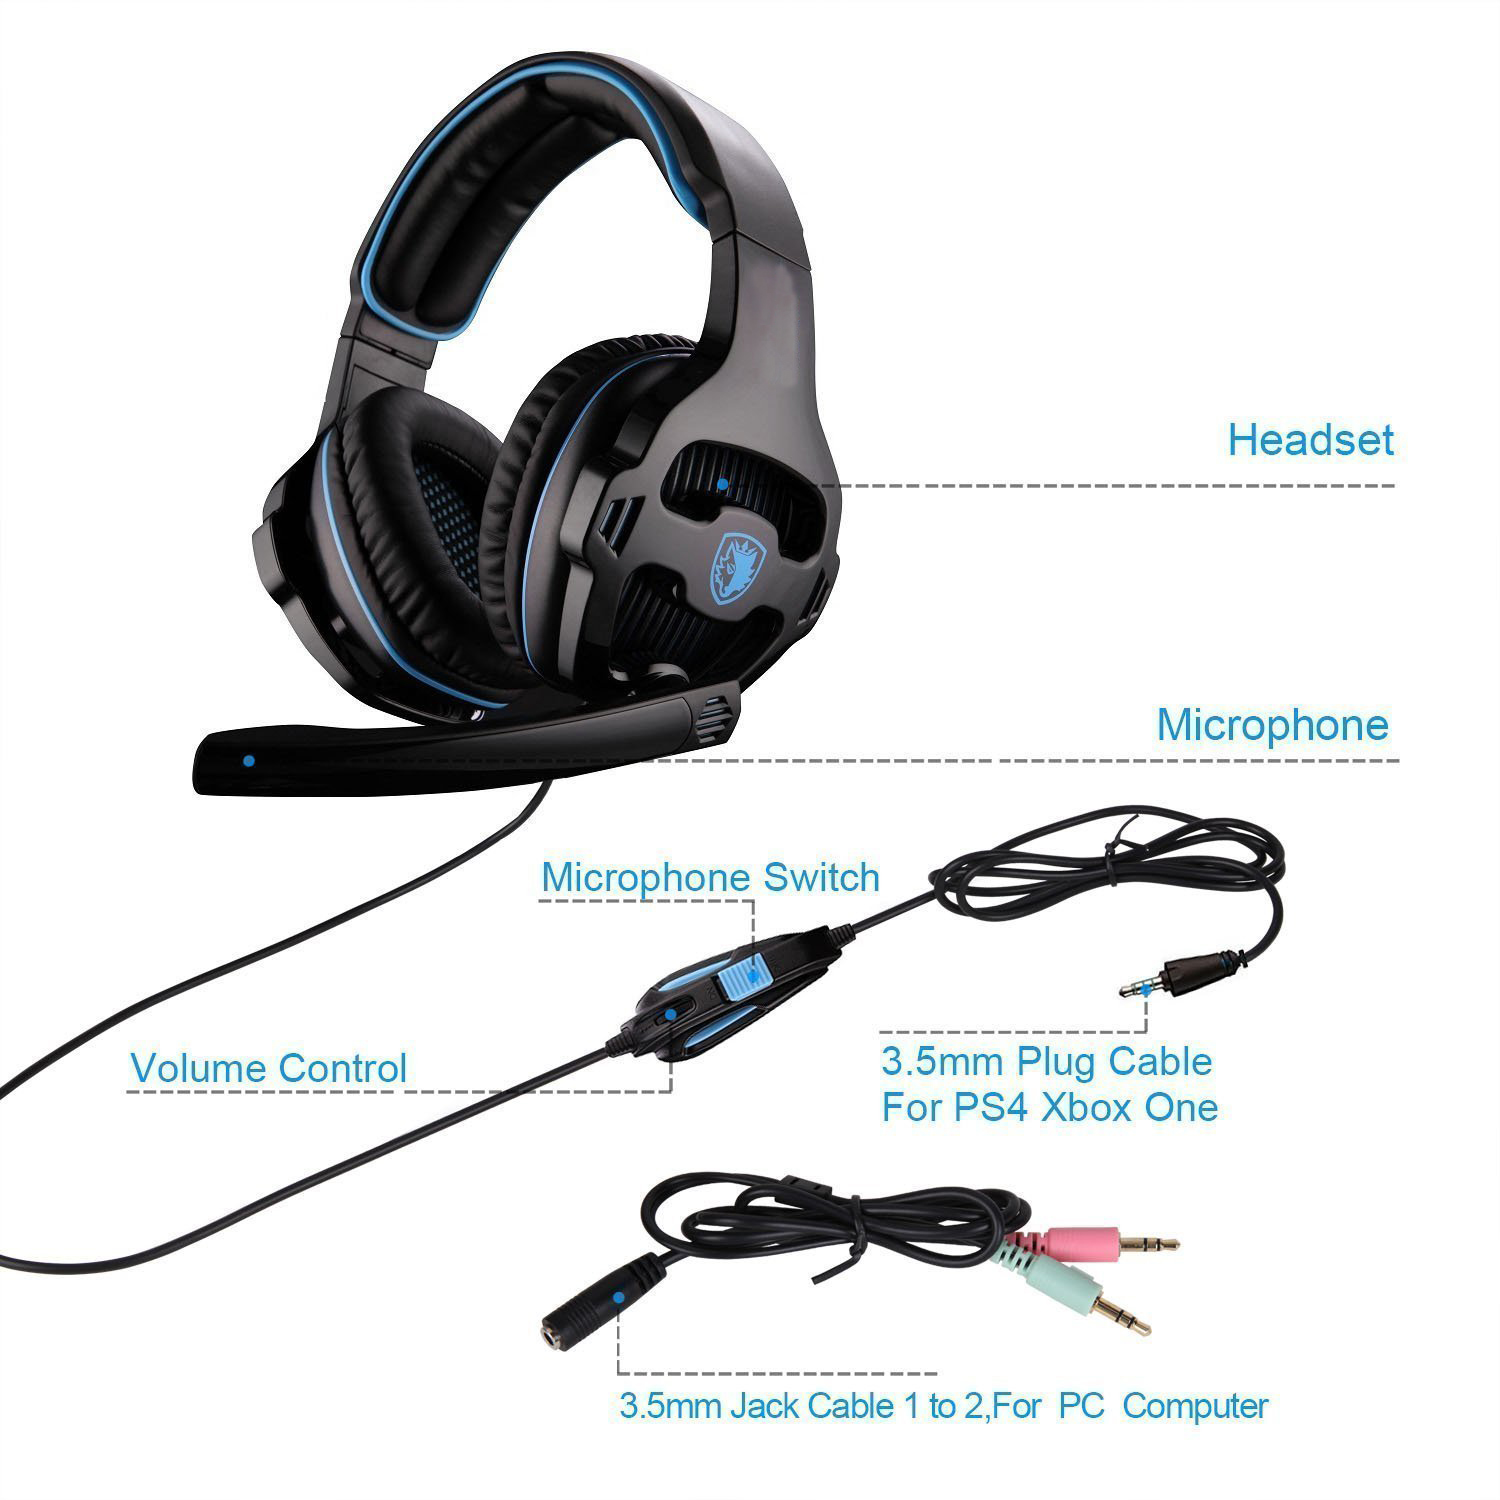 US $24 99 |Gaming Headset Single 3 5mm Jack Gamer Headphones with  Microphone,PC Adapter for New Xbox One/PS4/PlayStation 4 Laptop Phone-in